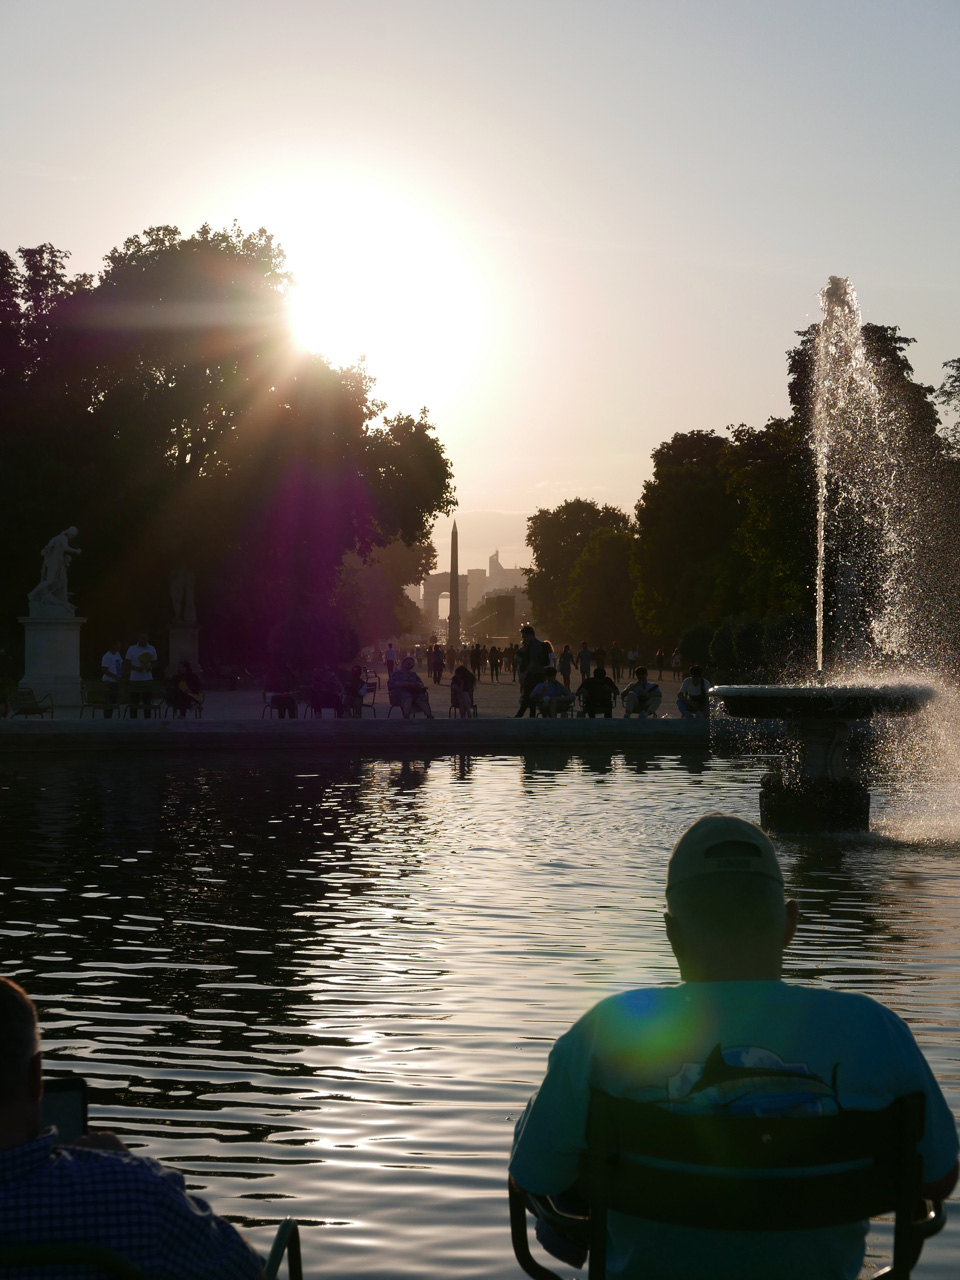 Cara Sharratt Travel - Summer - Jardin des Tuileries - Paris, France